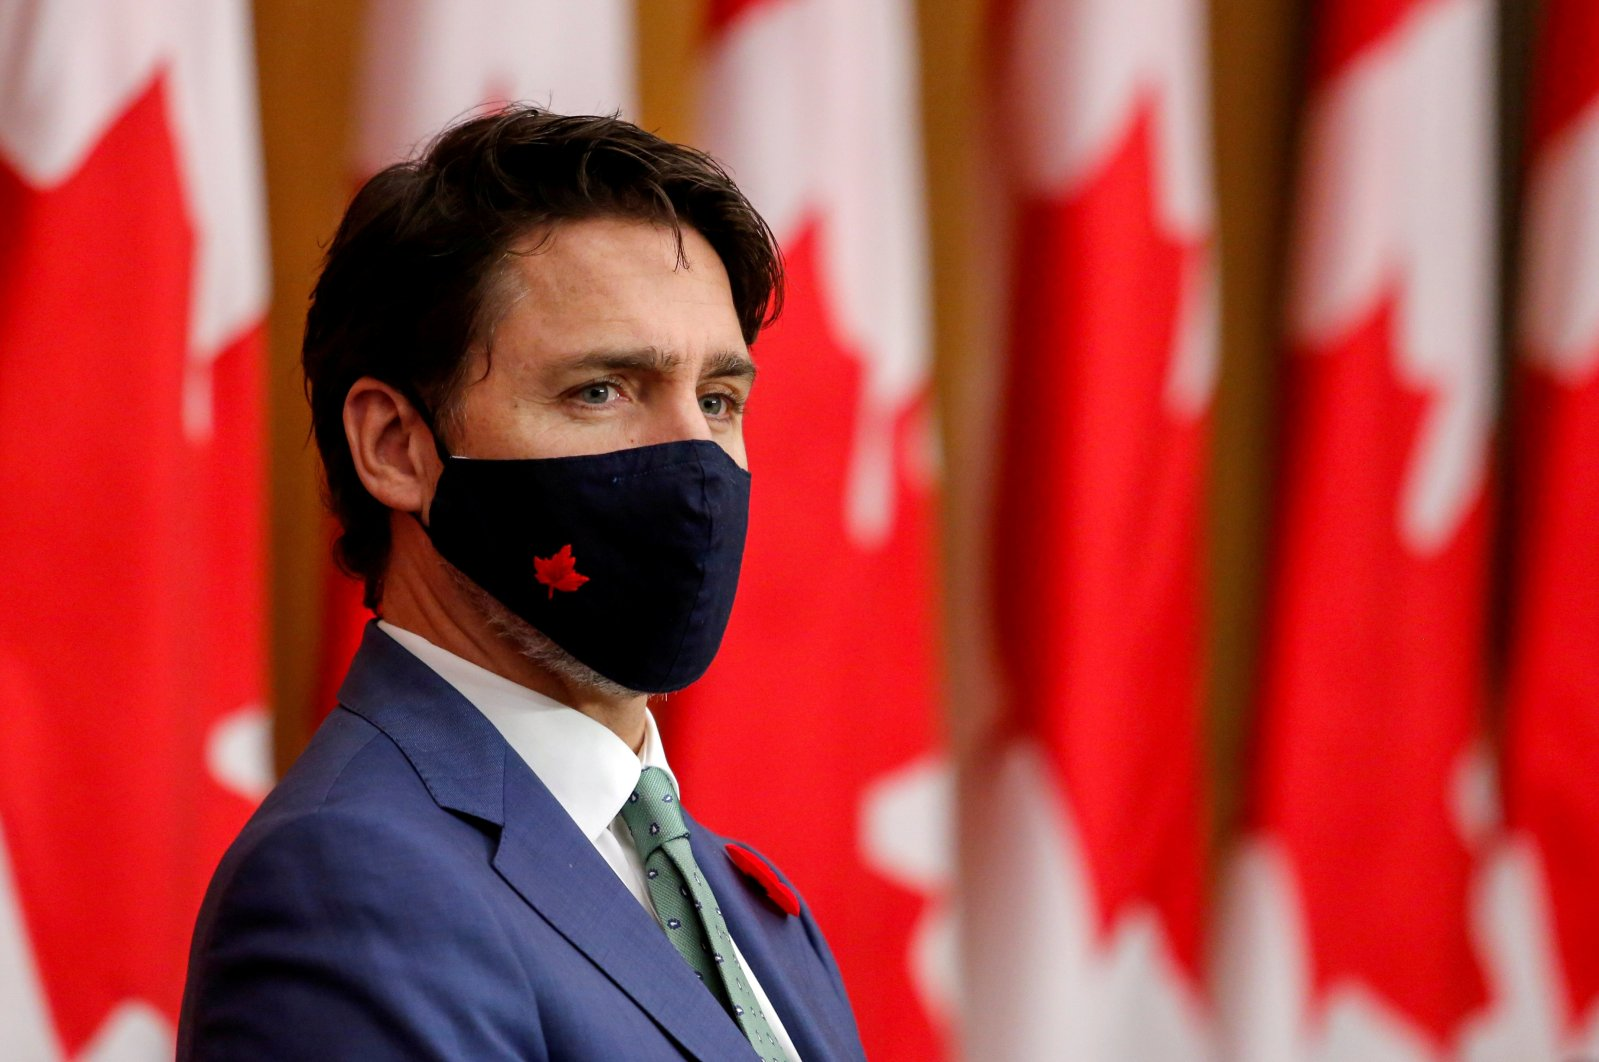 Canadian Prime Minister Justin Trudeau listens while wearing a mask at a news conference held to discuss the country's coronavirus disease response in Ottawa, Ontario, Canada, Nov. 6, 2020. (Reuters Photo)